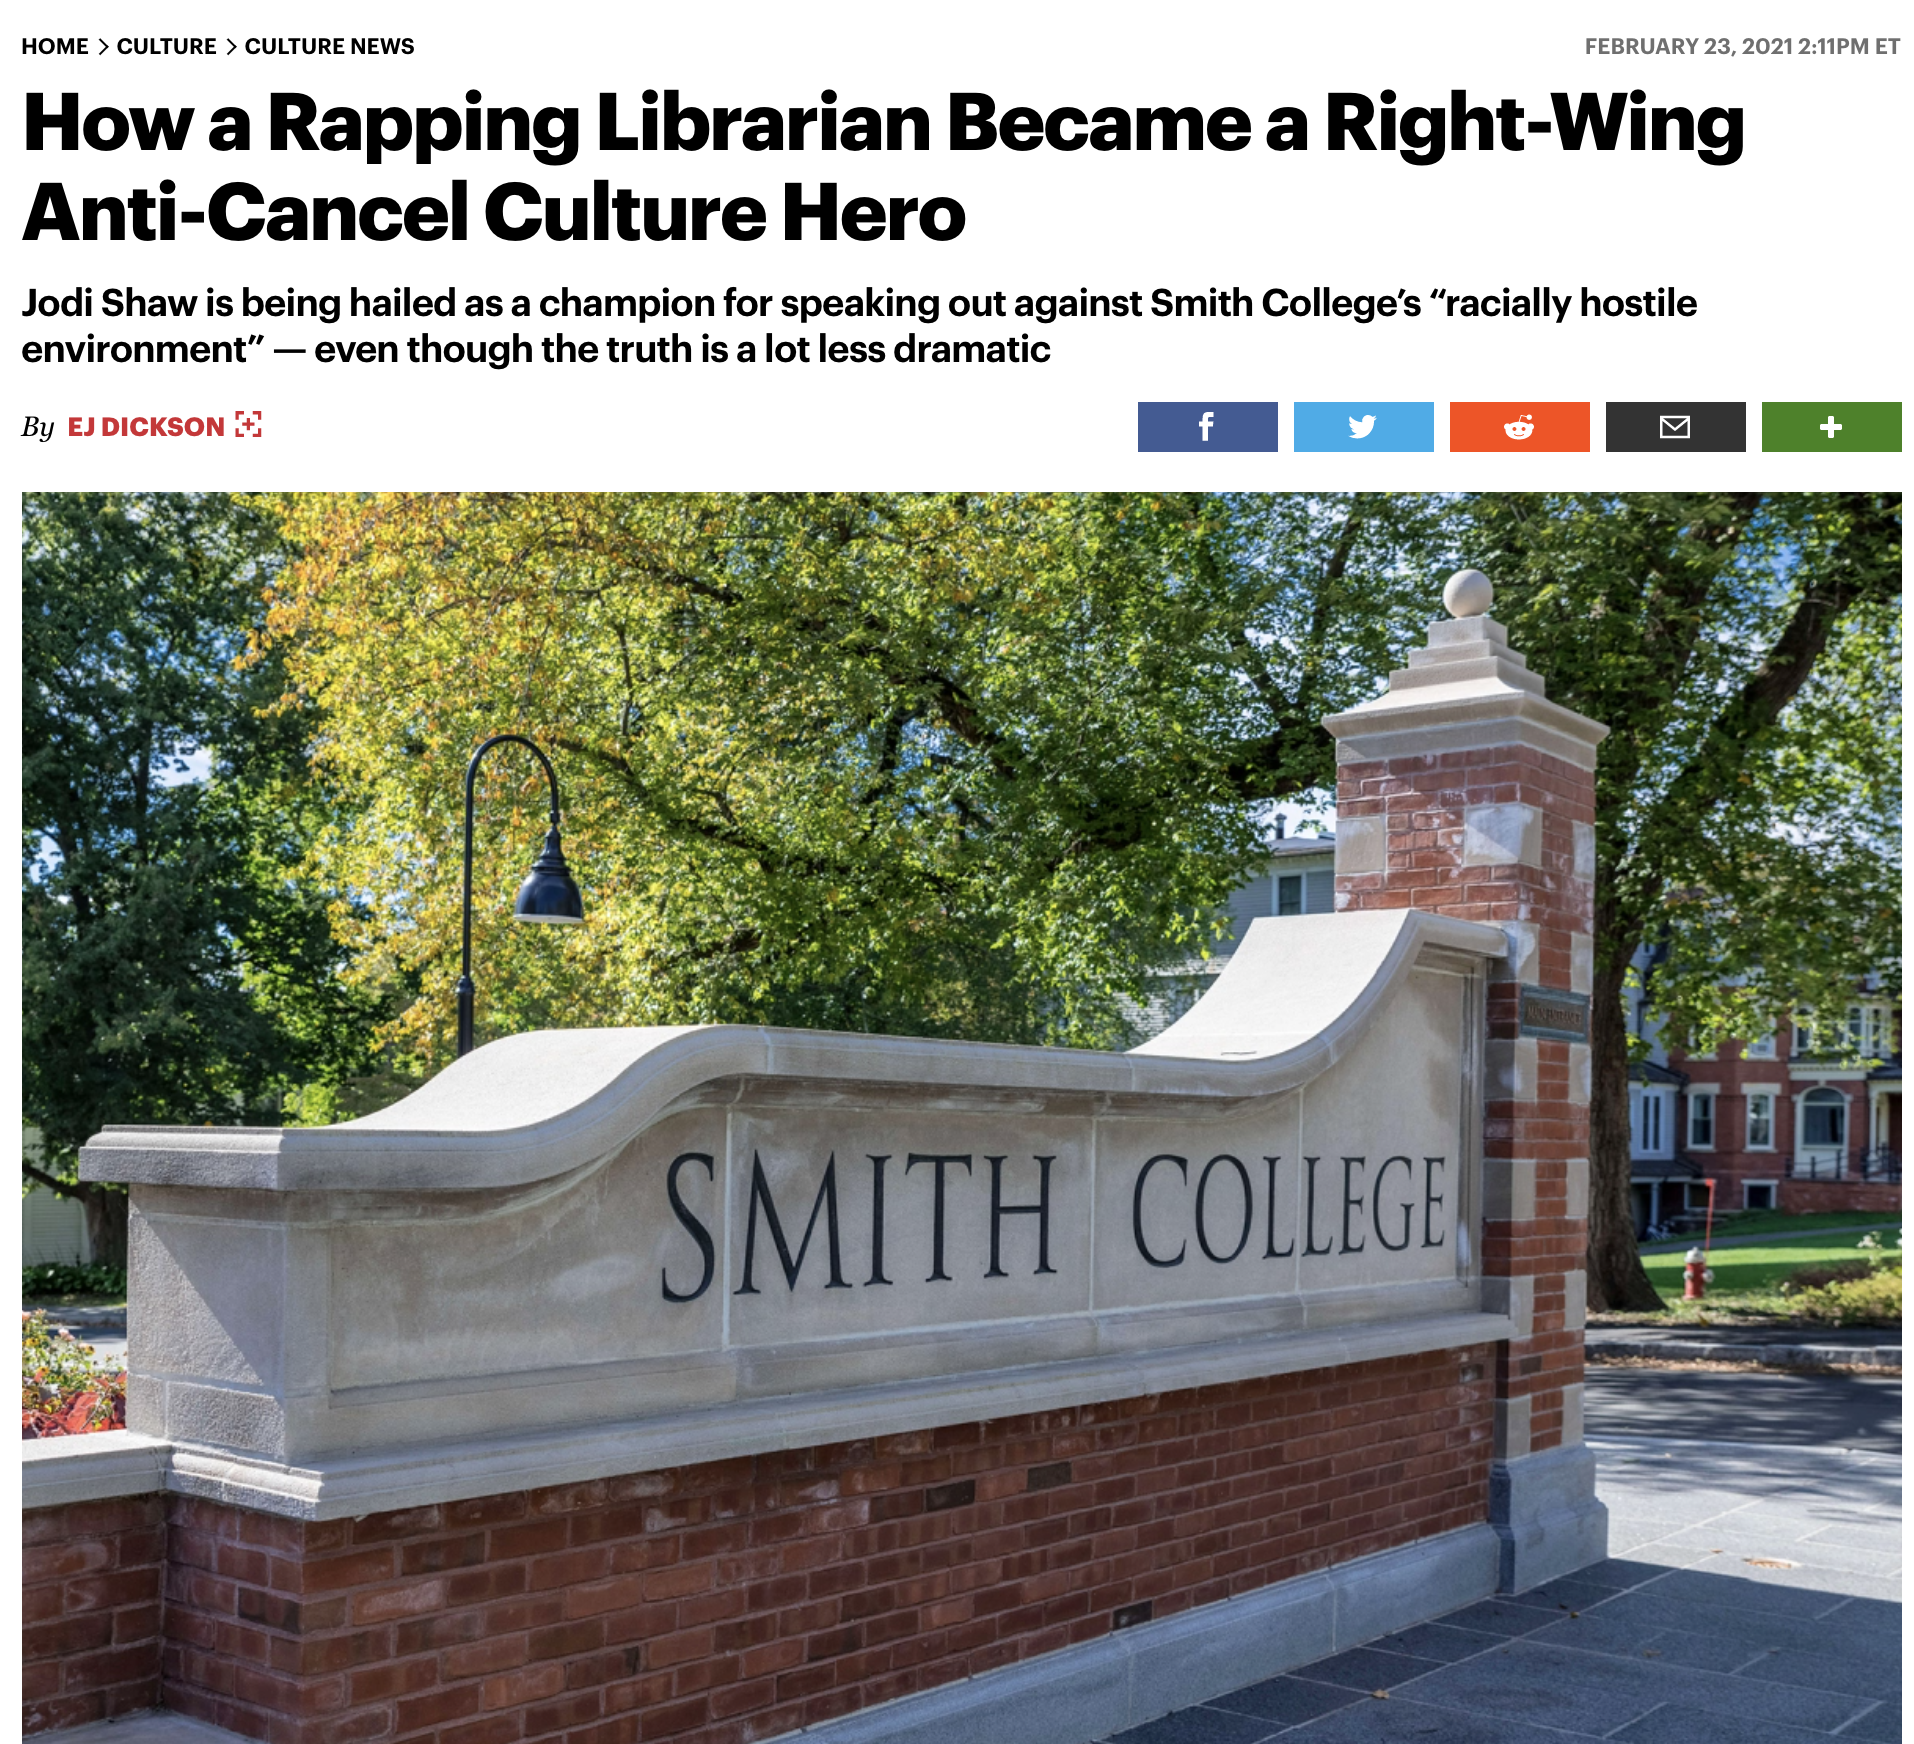 Smith meltdown: NYT reports honestly, for once (but Rolling Stone doesn't)